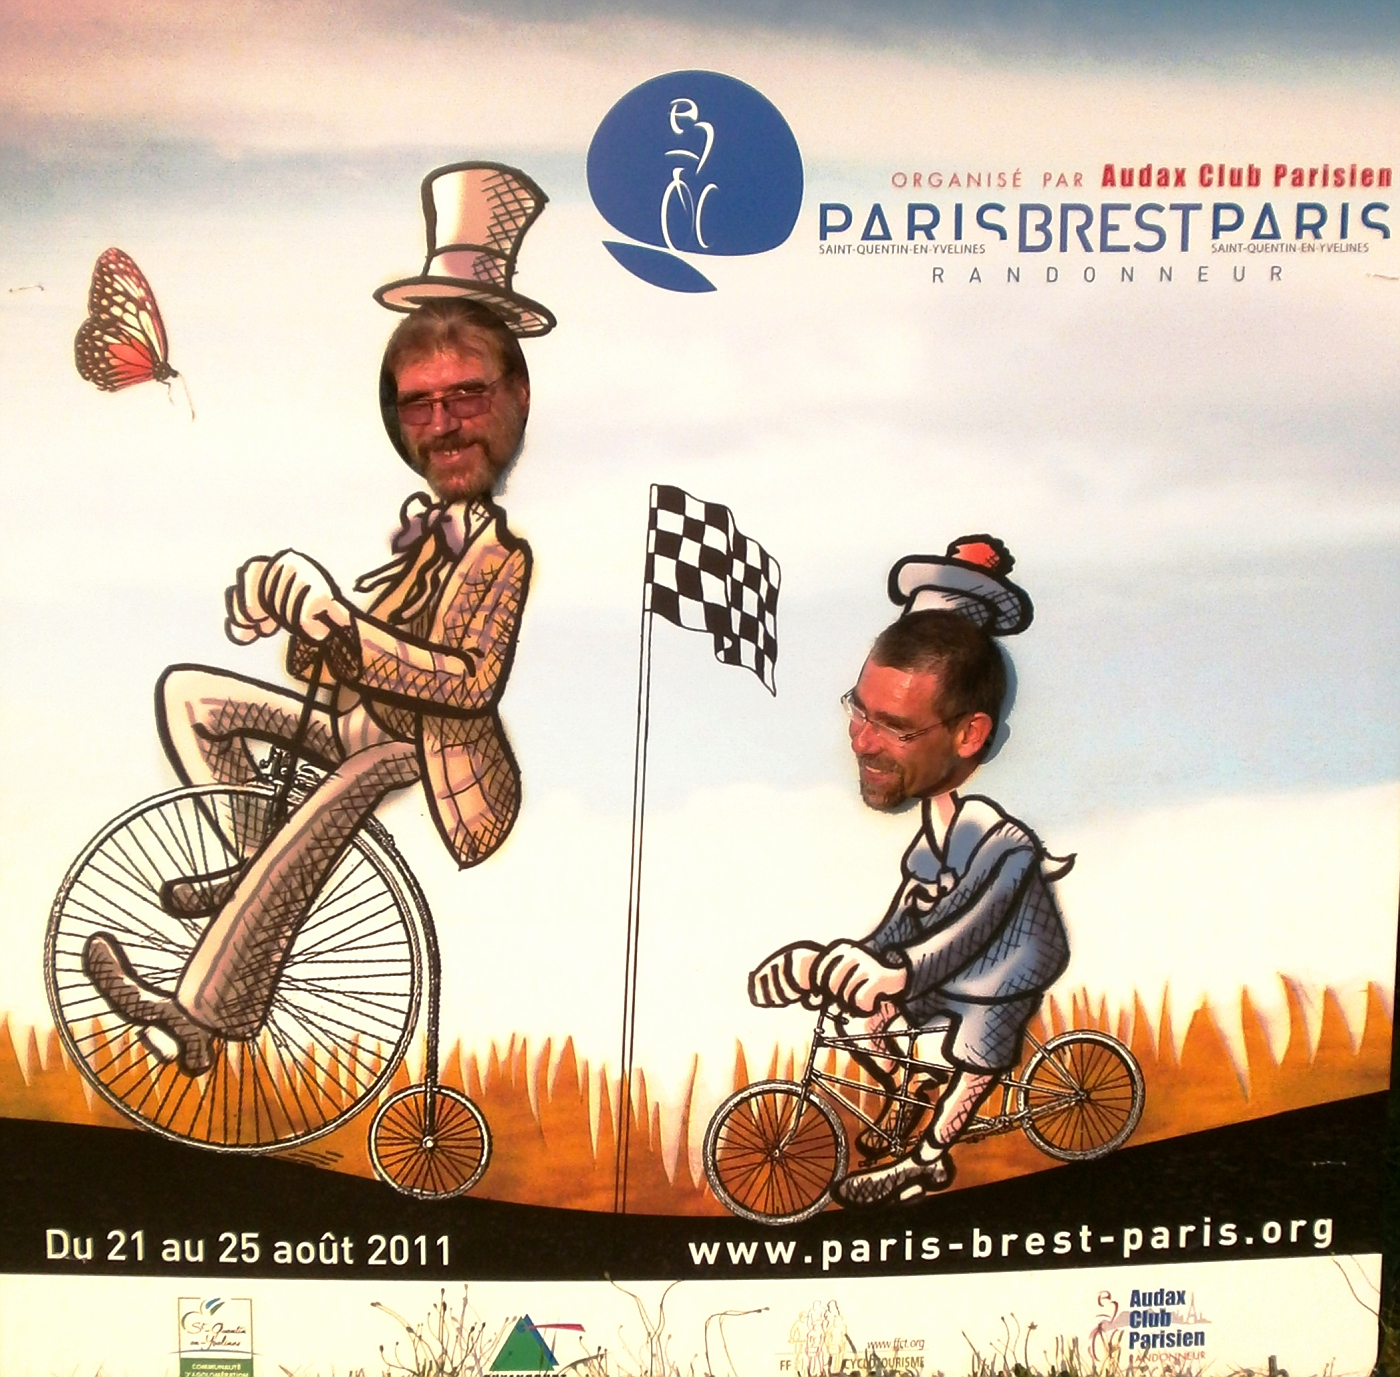 Manfred & Andreas train to ride PBP  :o)